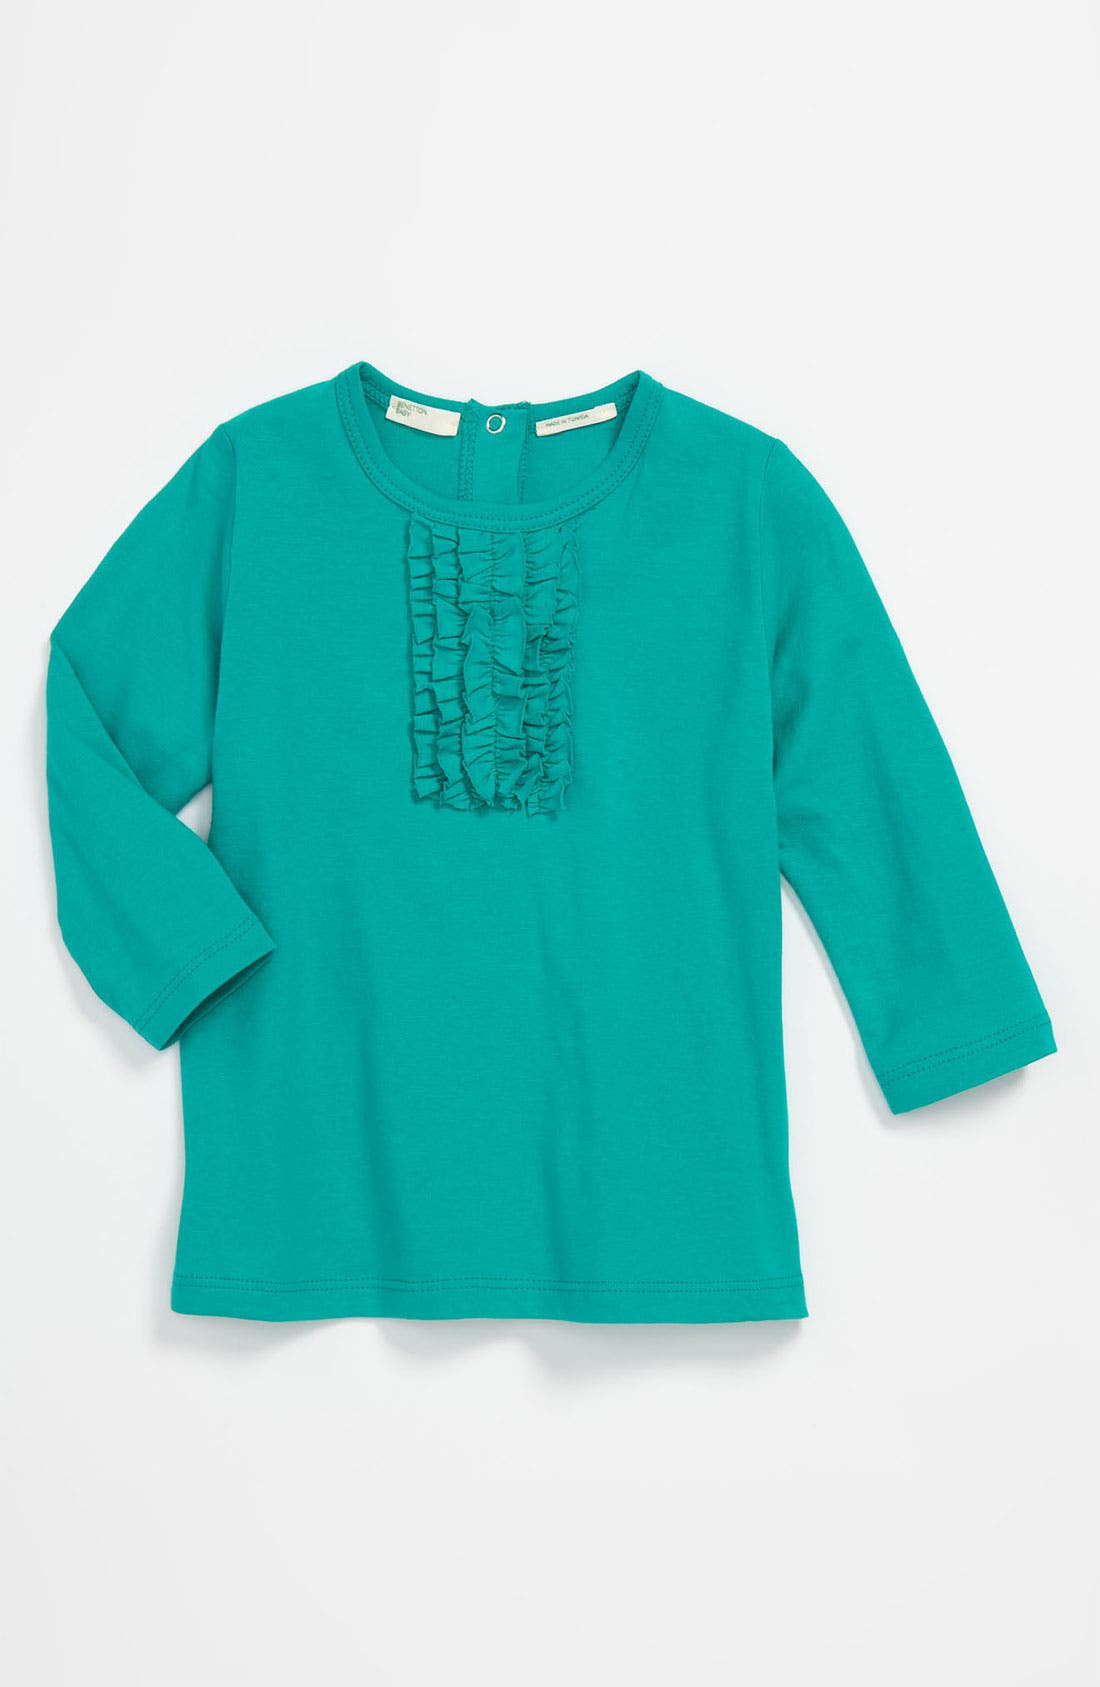 Alternate Image 1 Selected - United Colors of Benetton Kids Tee (Infant)